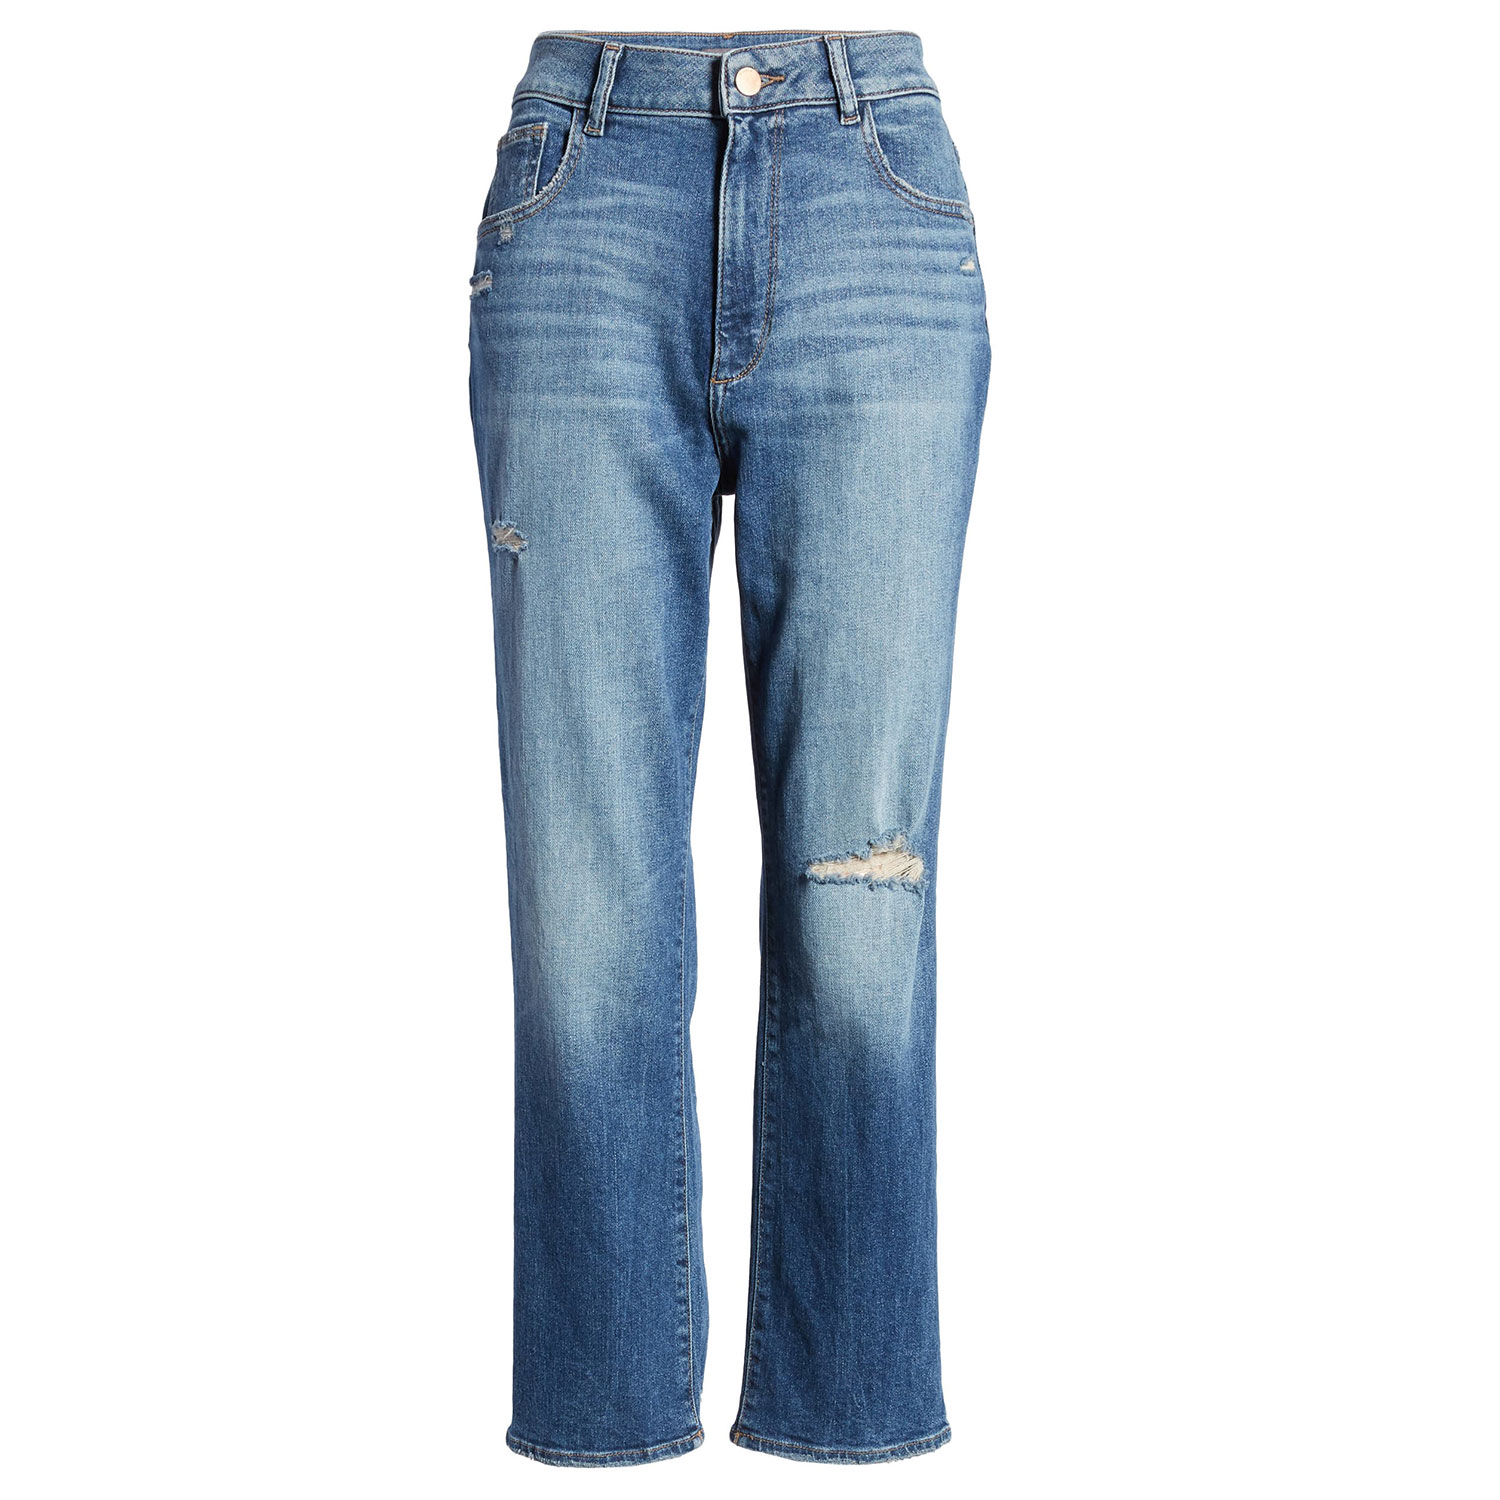 Jerry High Waist Ankle Straight Leg Jeans Edmund